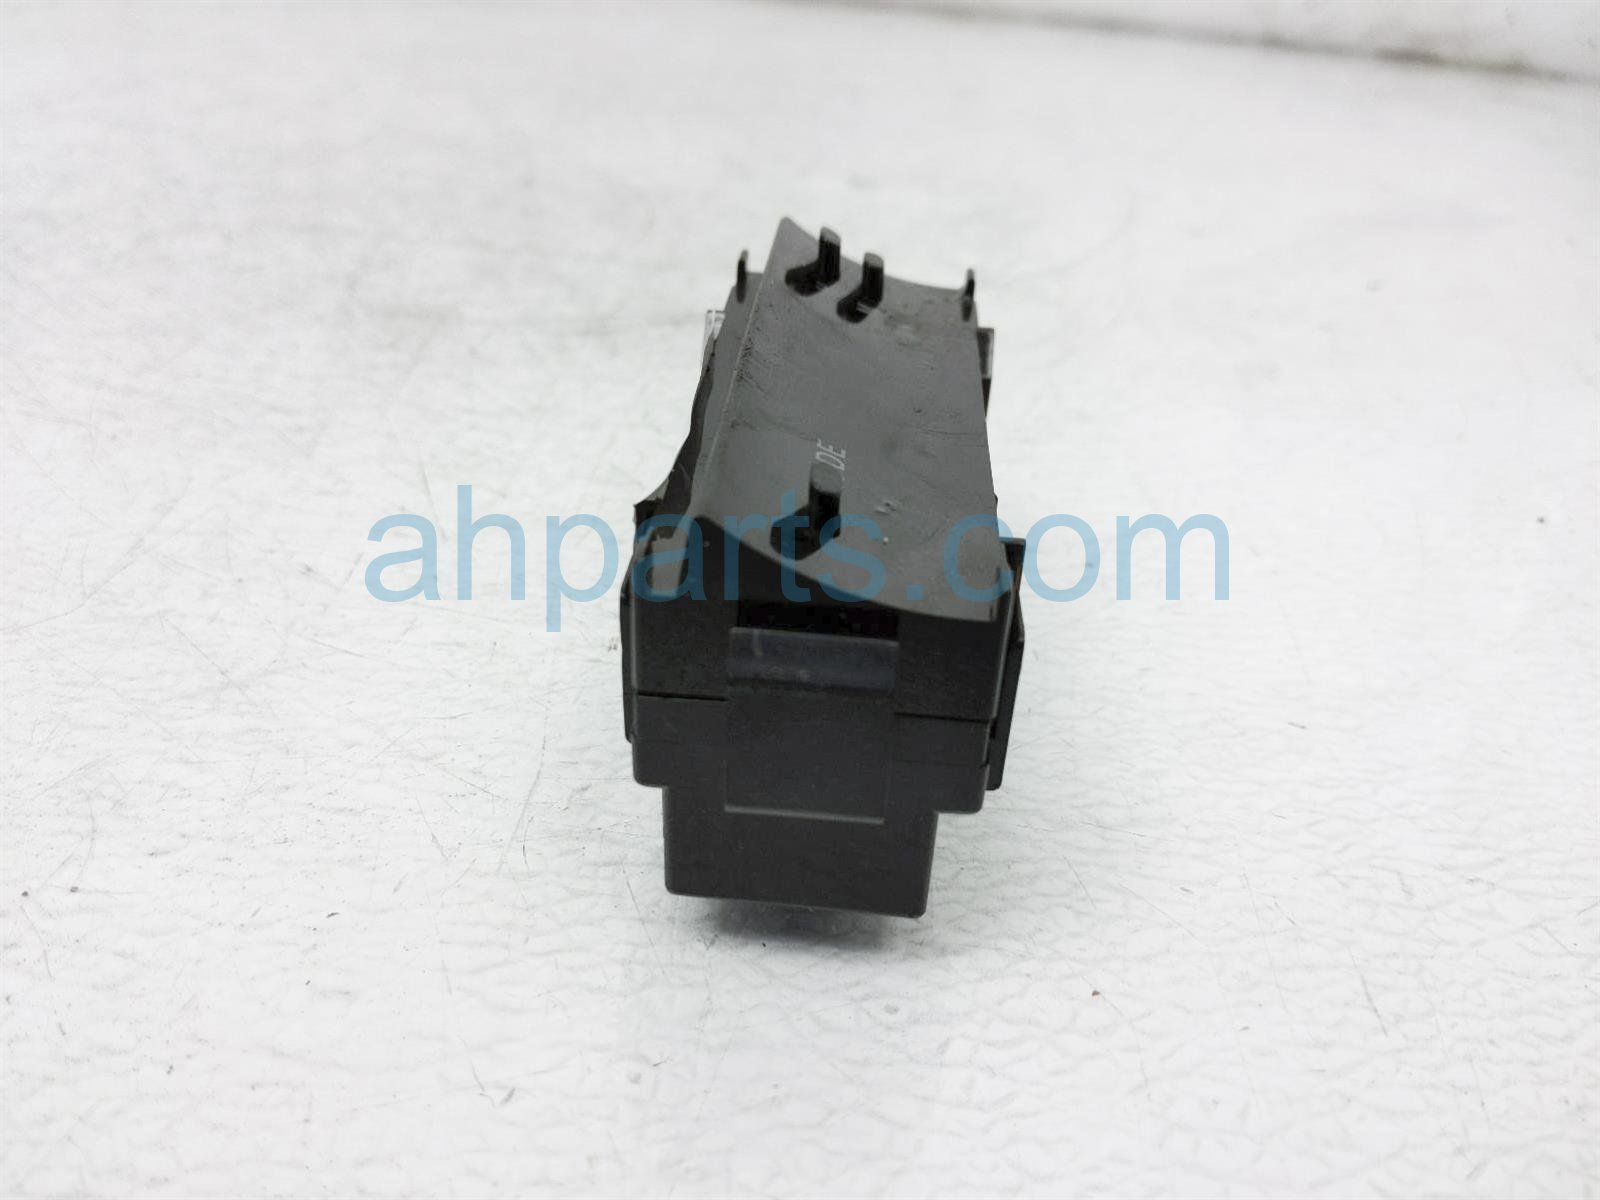 2001 Toyota Camry Clock Module Assy 83910 33030 Replacement